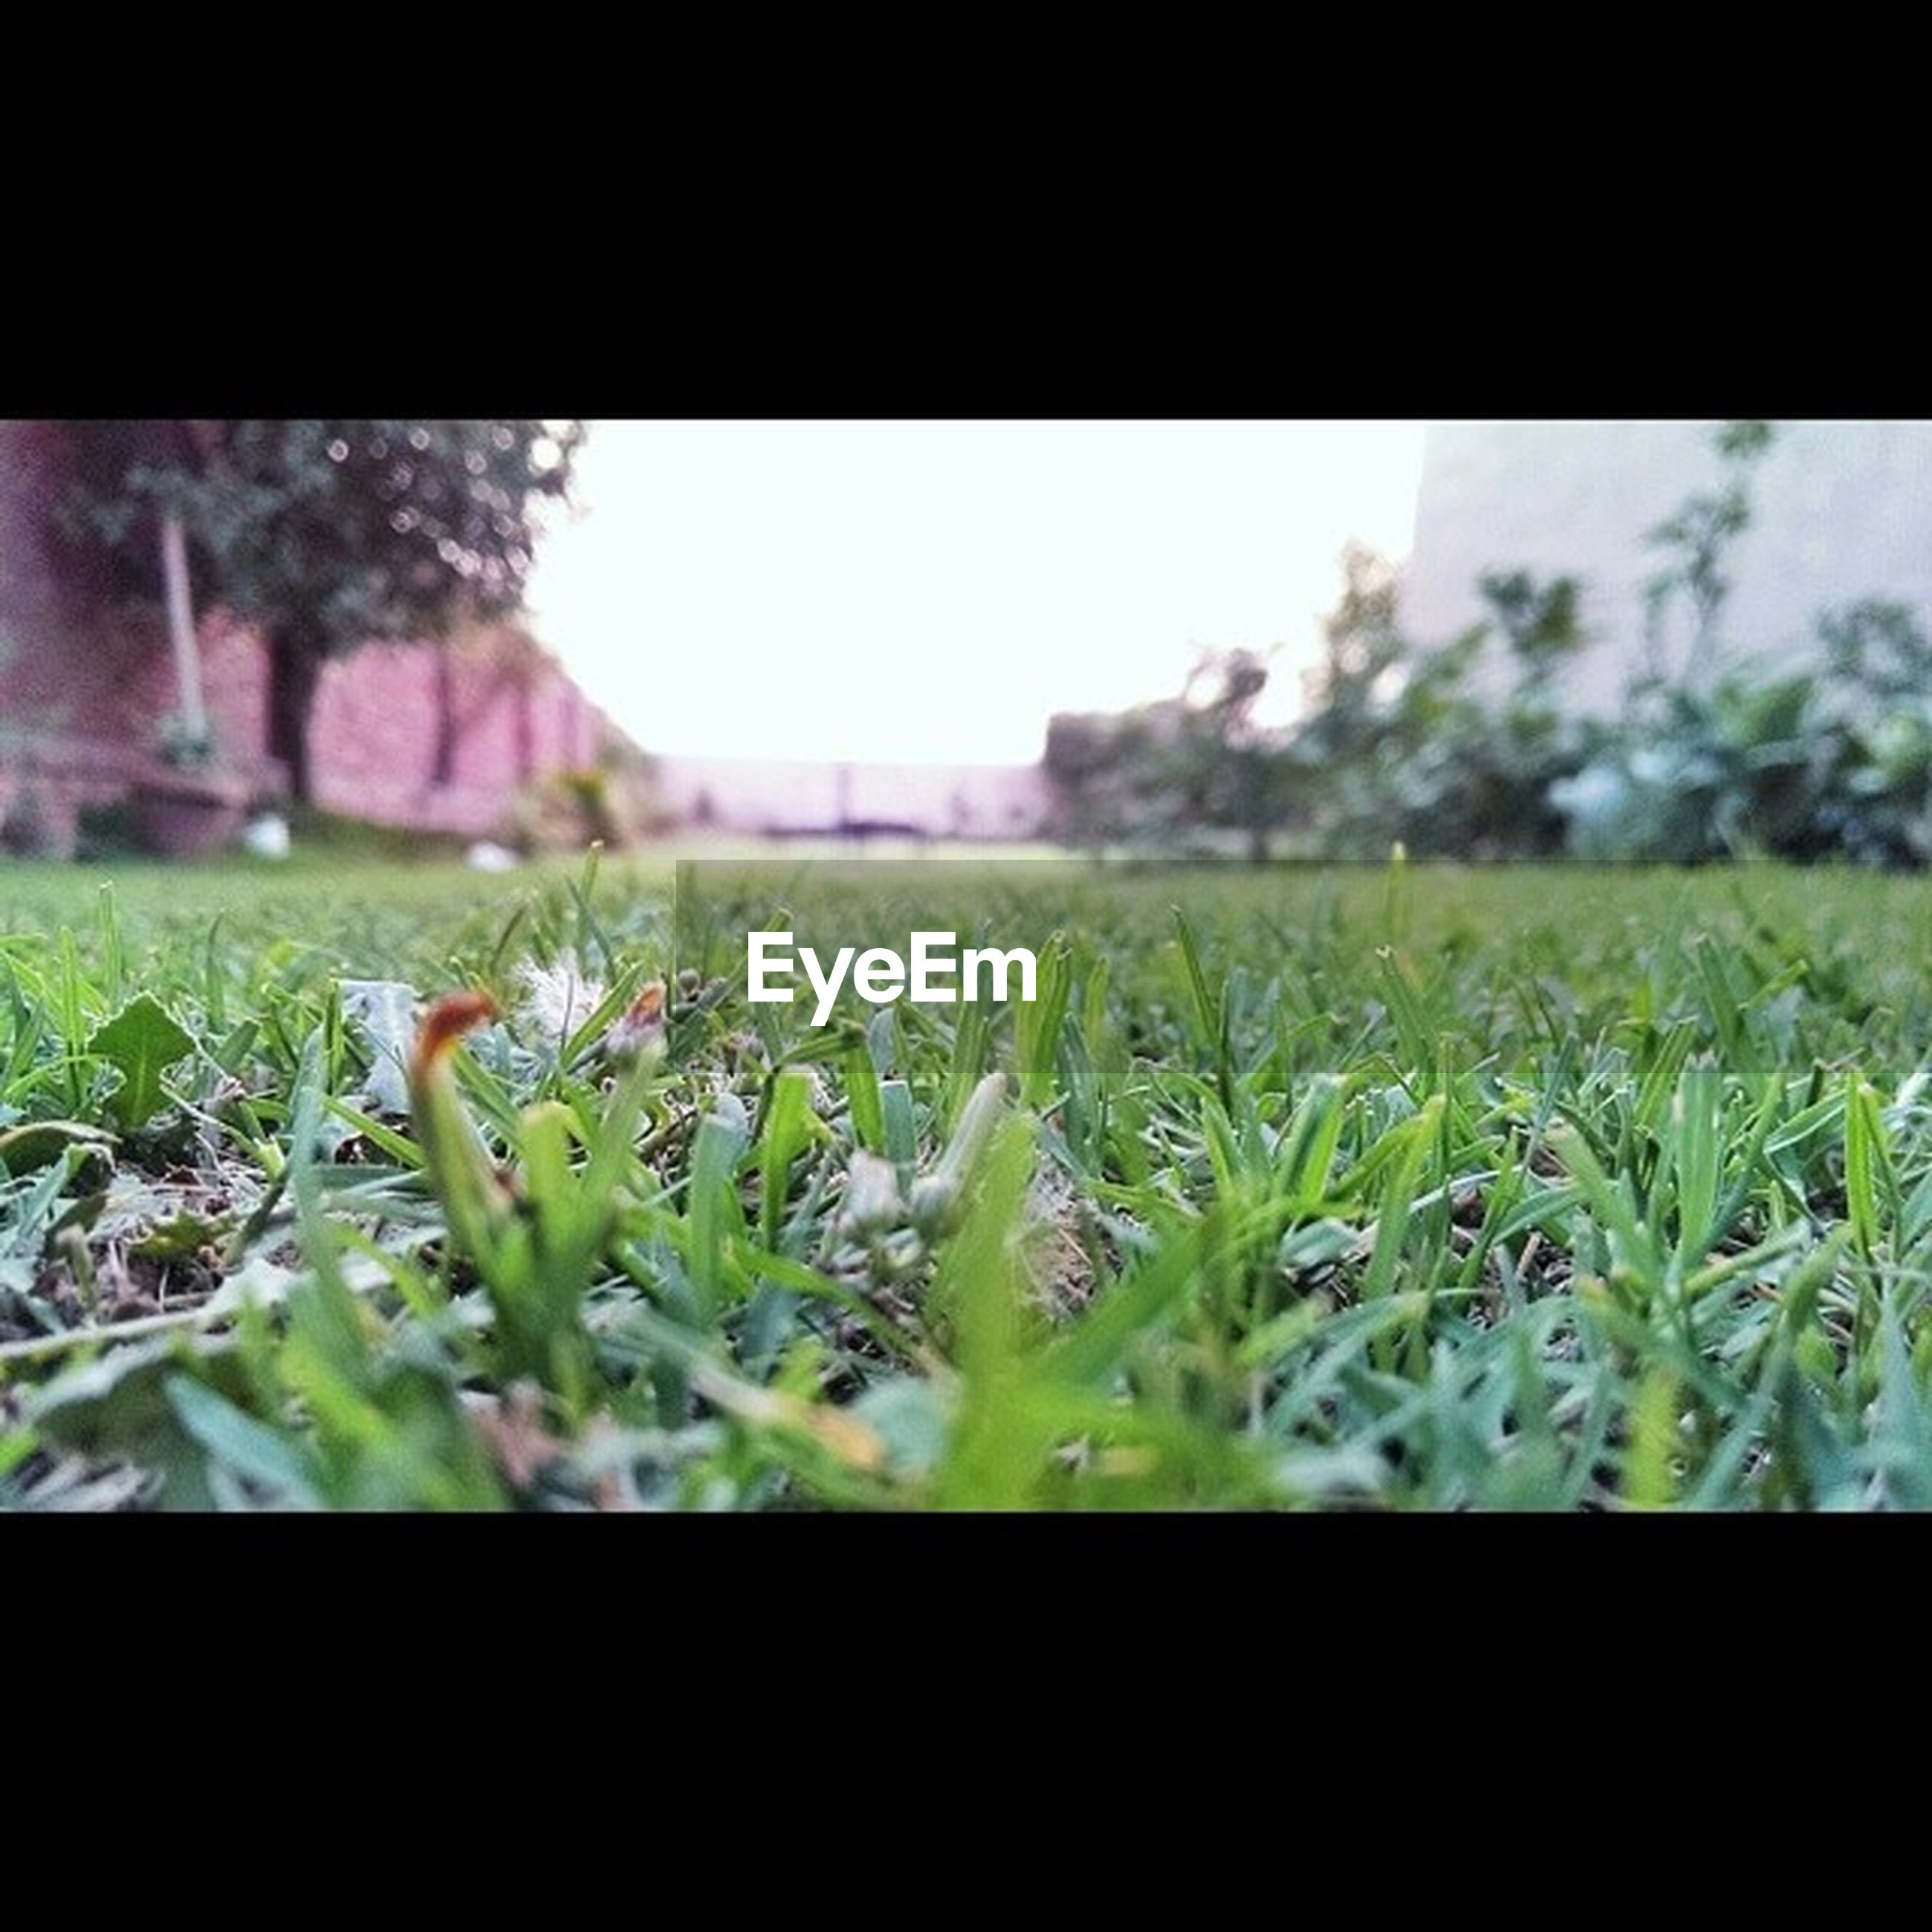 growth, flower, field, plant, grass, freshness, fragility, focus on foreground, nature, green color, selective focus, close-up, beauty in nature, transfer print, day, grassy, auto post production filter, outdoors, tranquility, stem